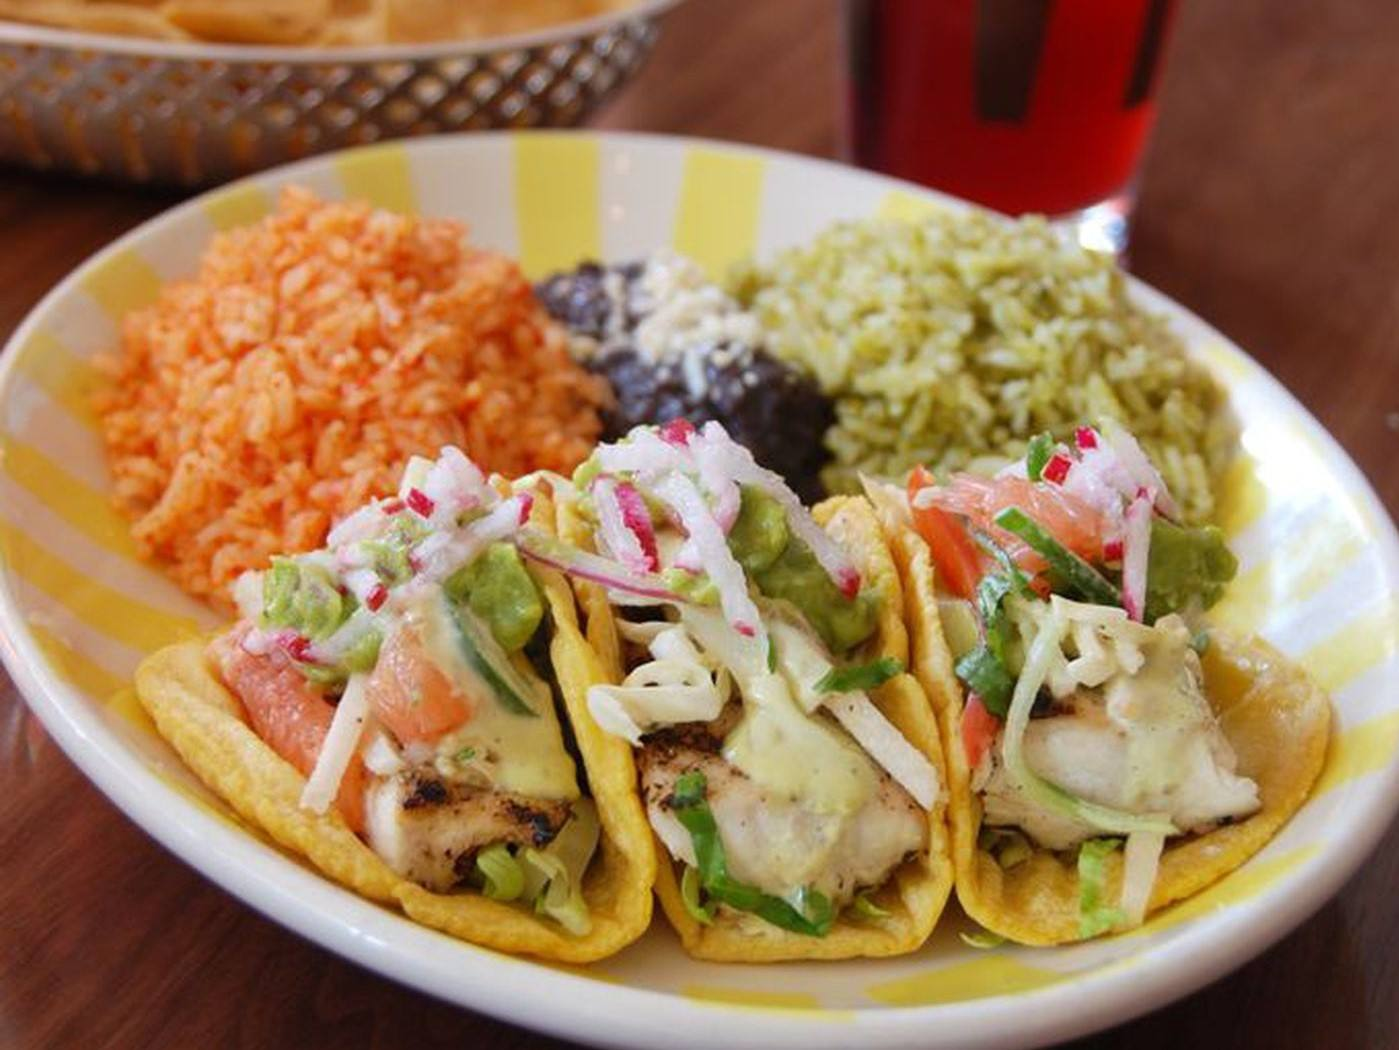 Grilled fish tacos from Border Grill at Tom Bradley International in LAX